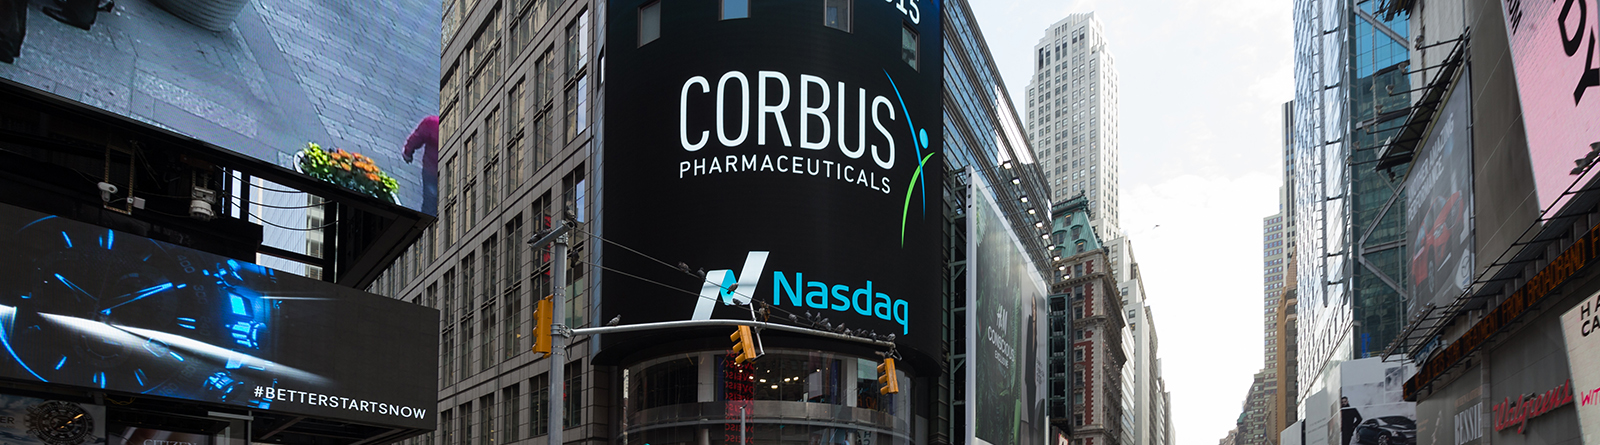 Corbus Pharmaceuticals Announces Appointment of Craig Millian as Chief Commercial Officer Banner